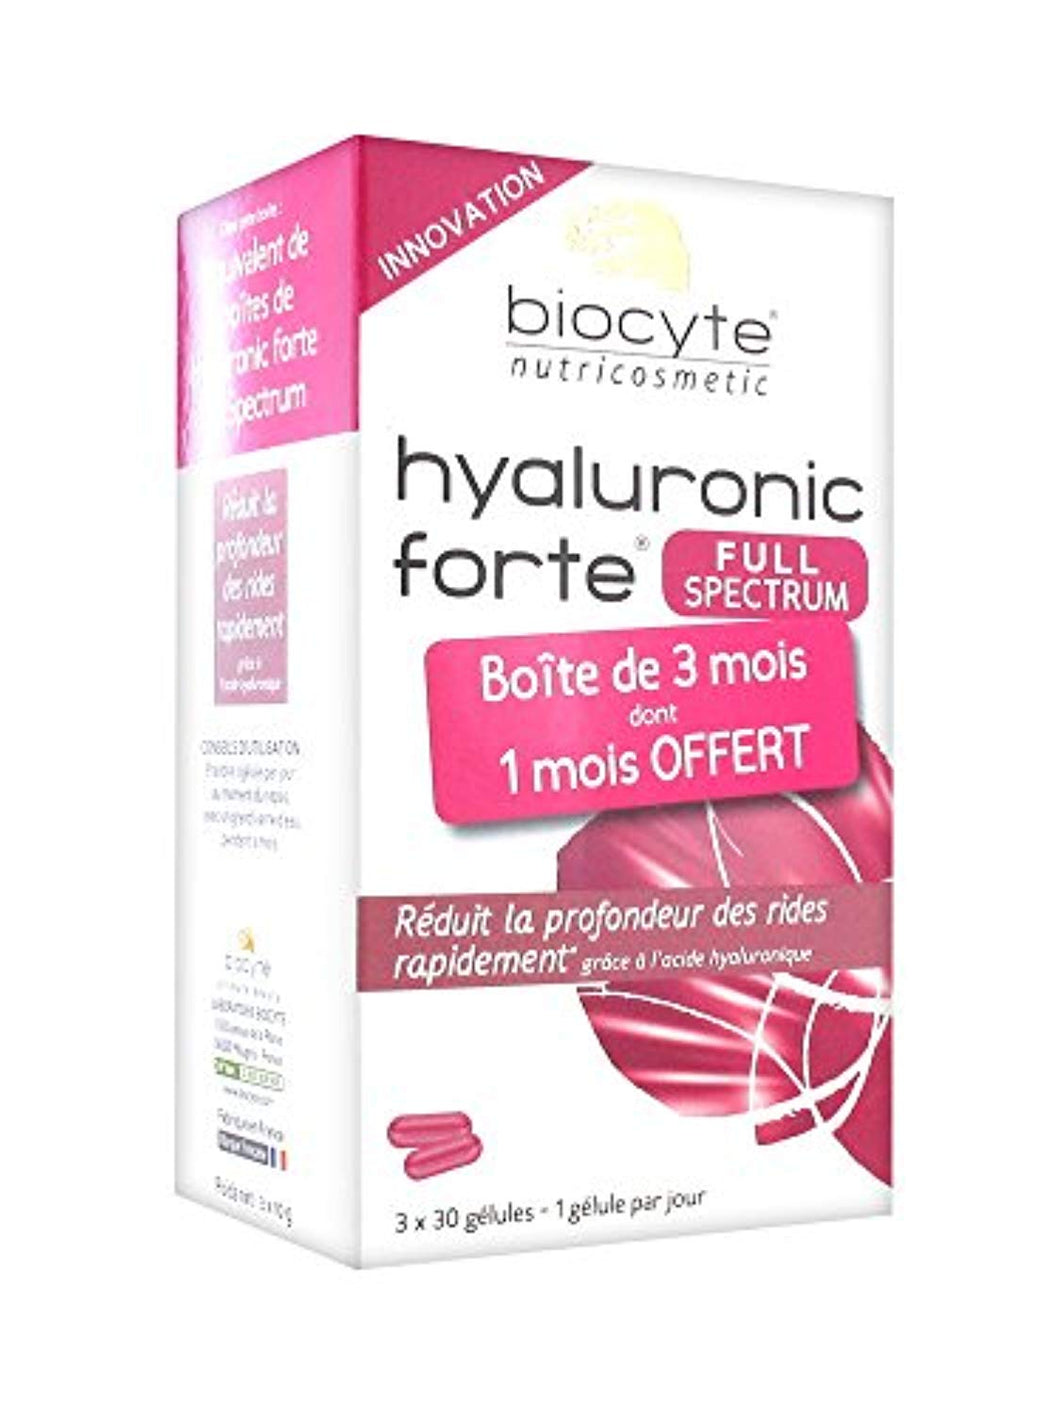 Biocyte Hyaluronic Forte Full Spectrum 3 x 30 Gélules